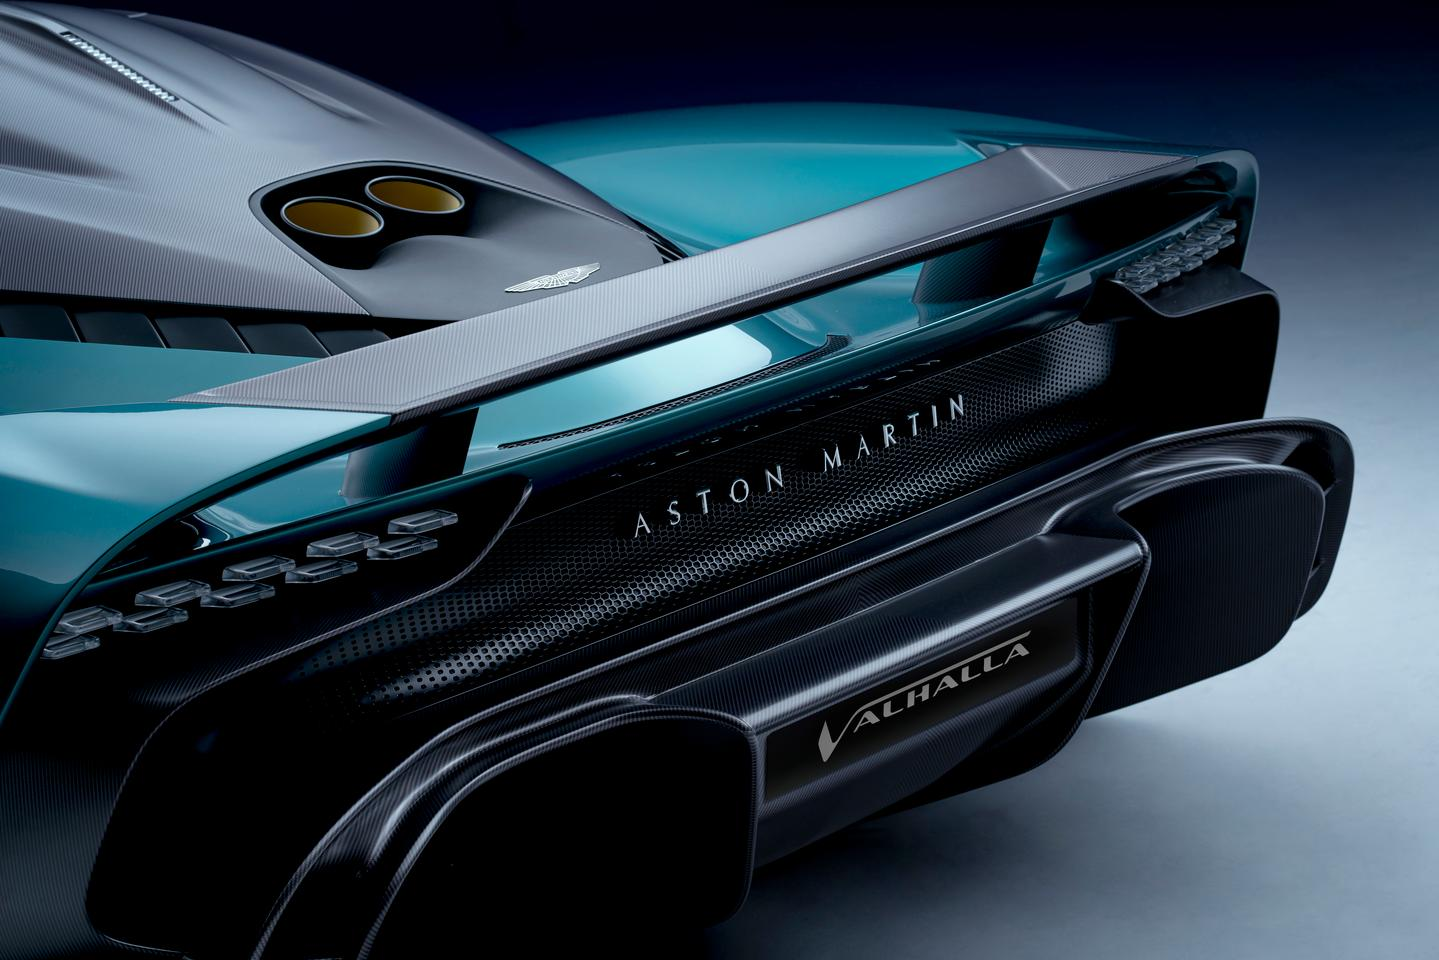 In terms of aerodynamics, the Valhalla takes its lead from Aston Martin's Valkyrie hypercar